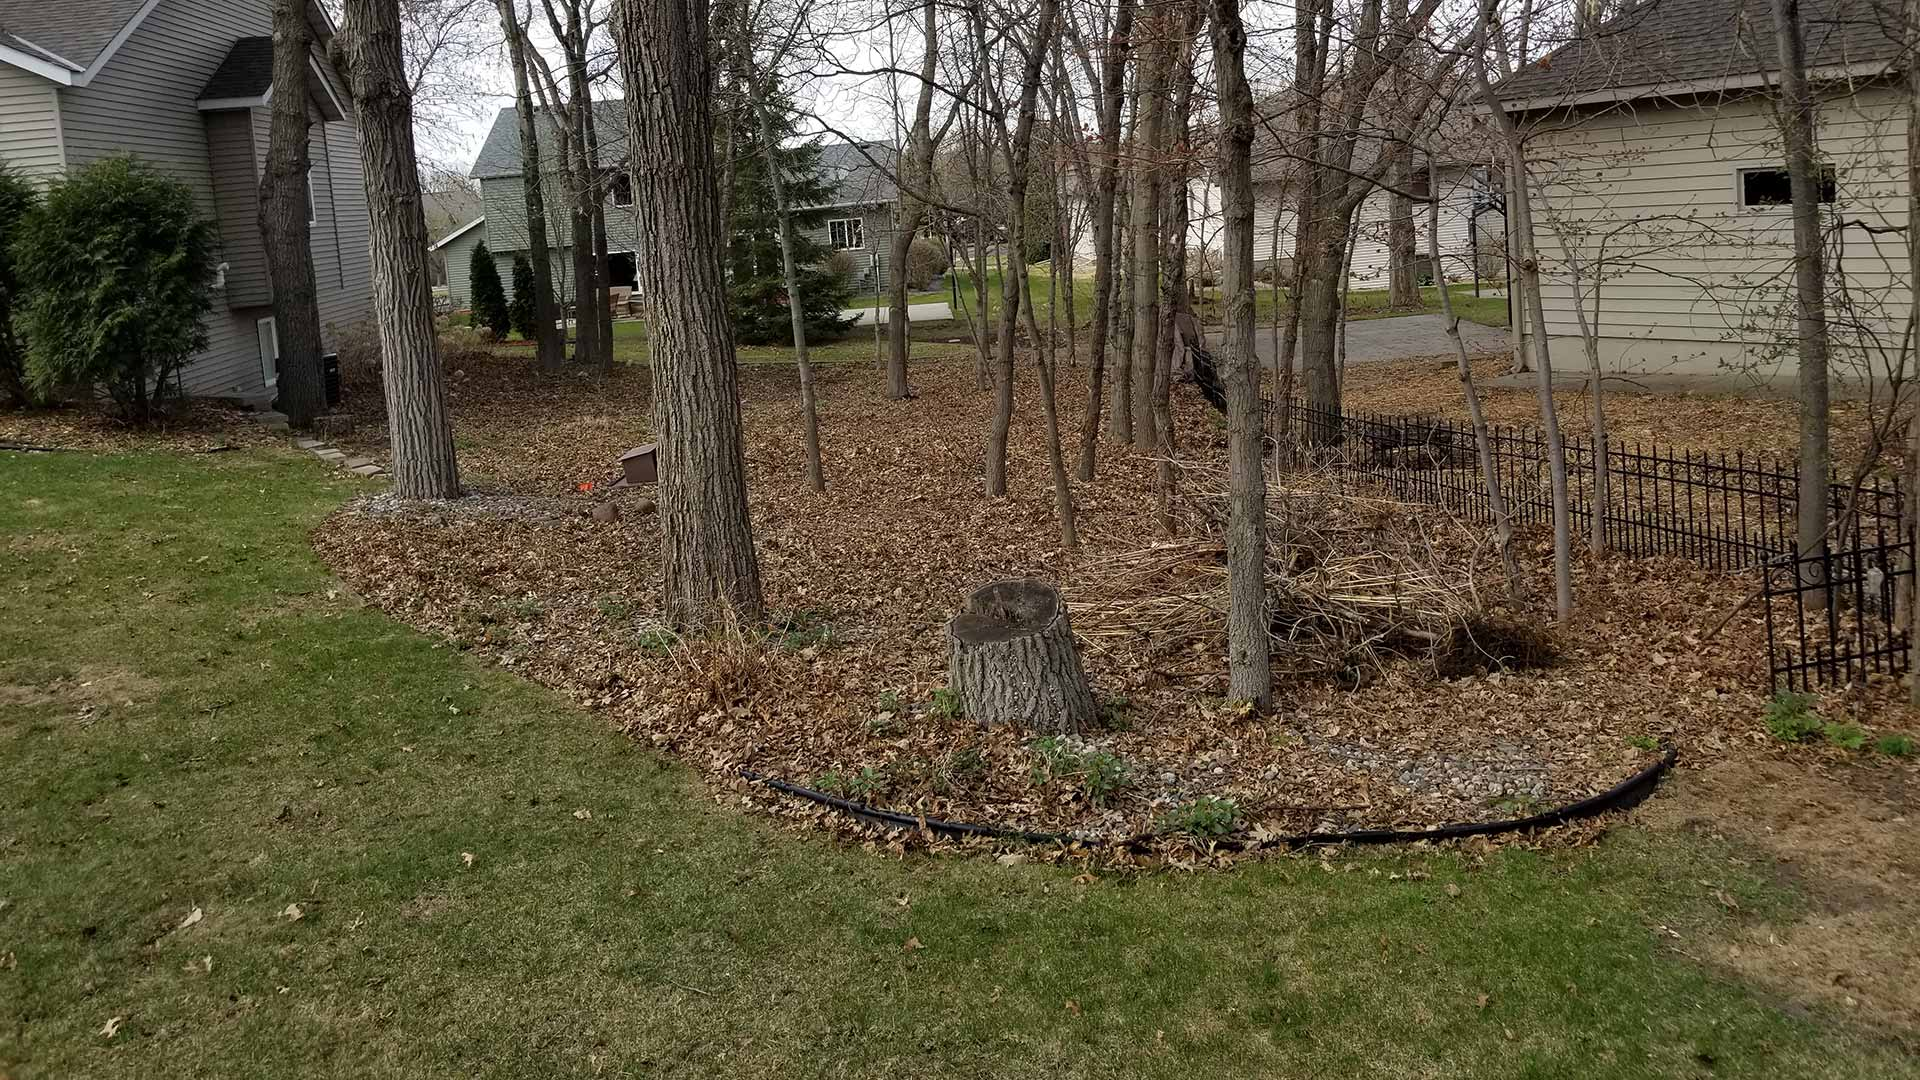 Residential yard before a fall clean up in Sauk Rapids, MN.